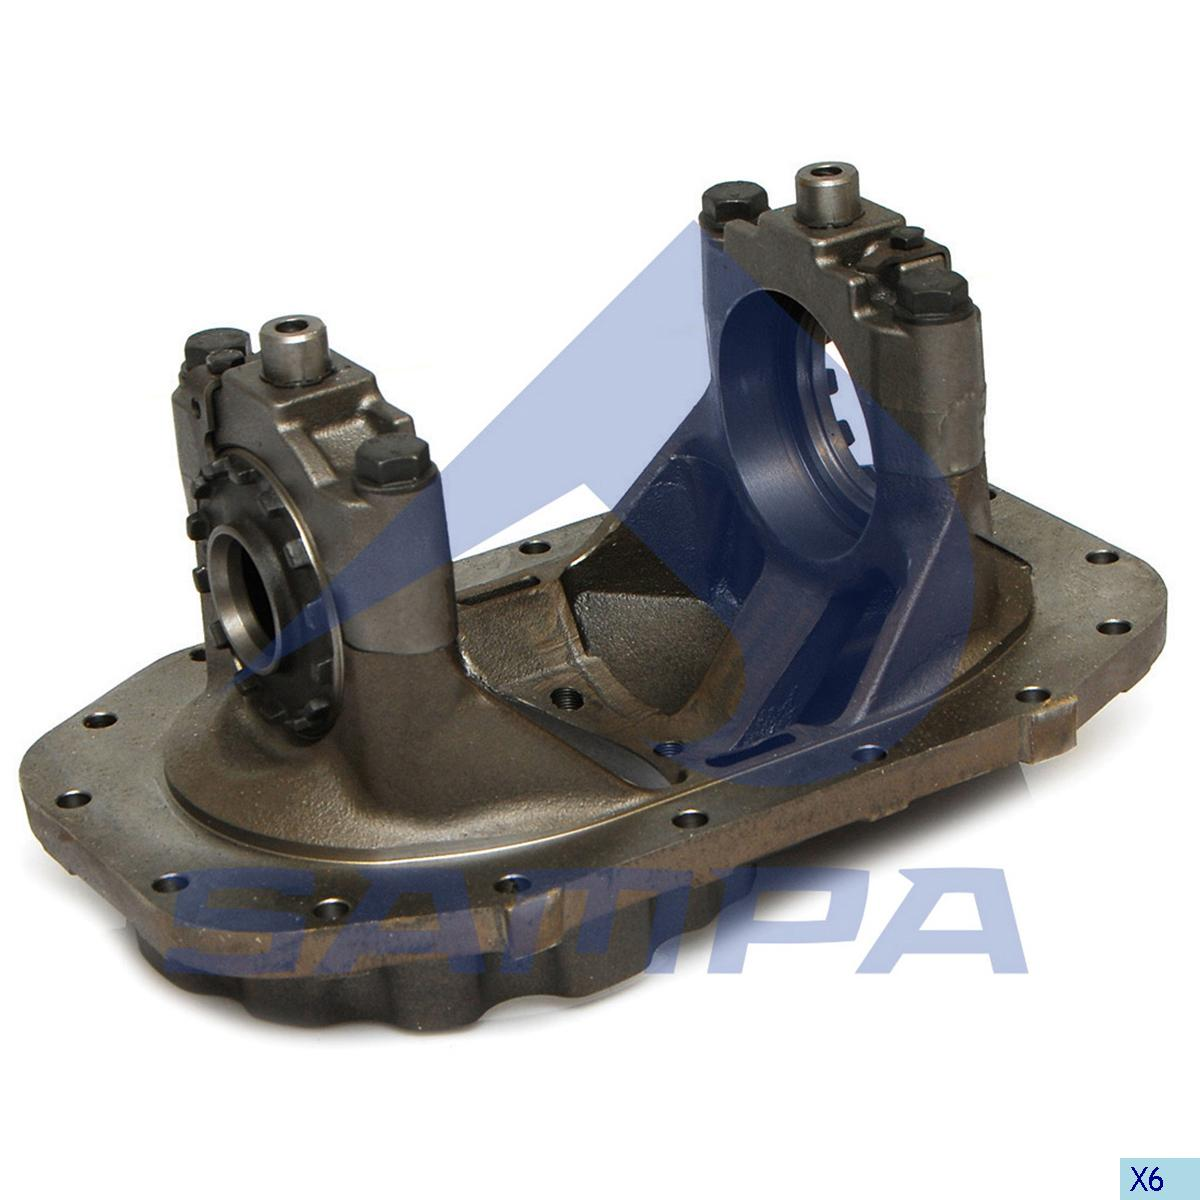 Bearing Housing, Differential Gear Housing, Man, Power Unit